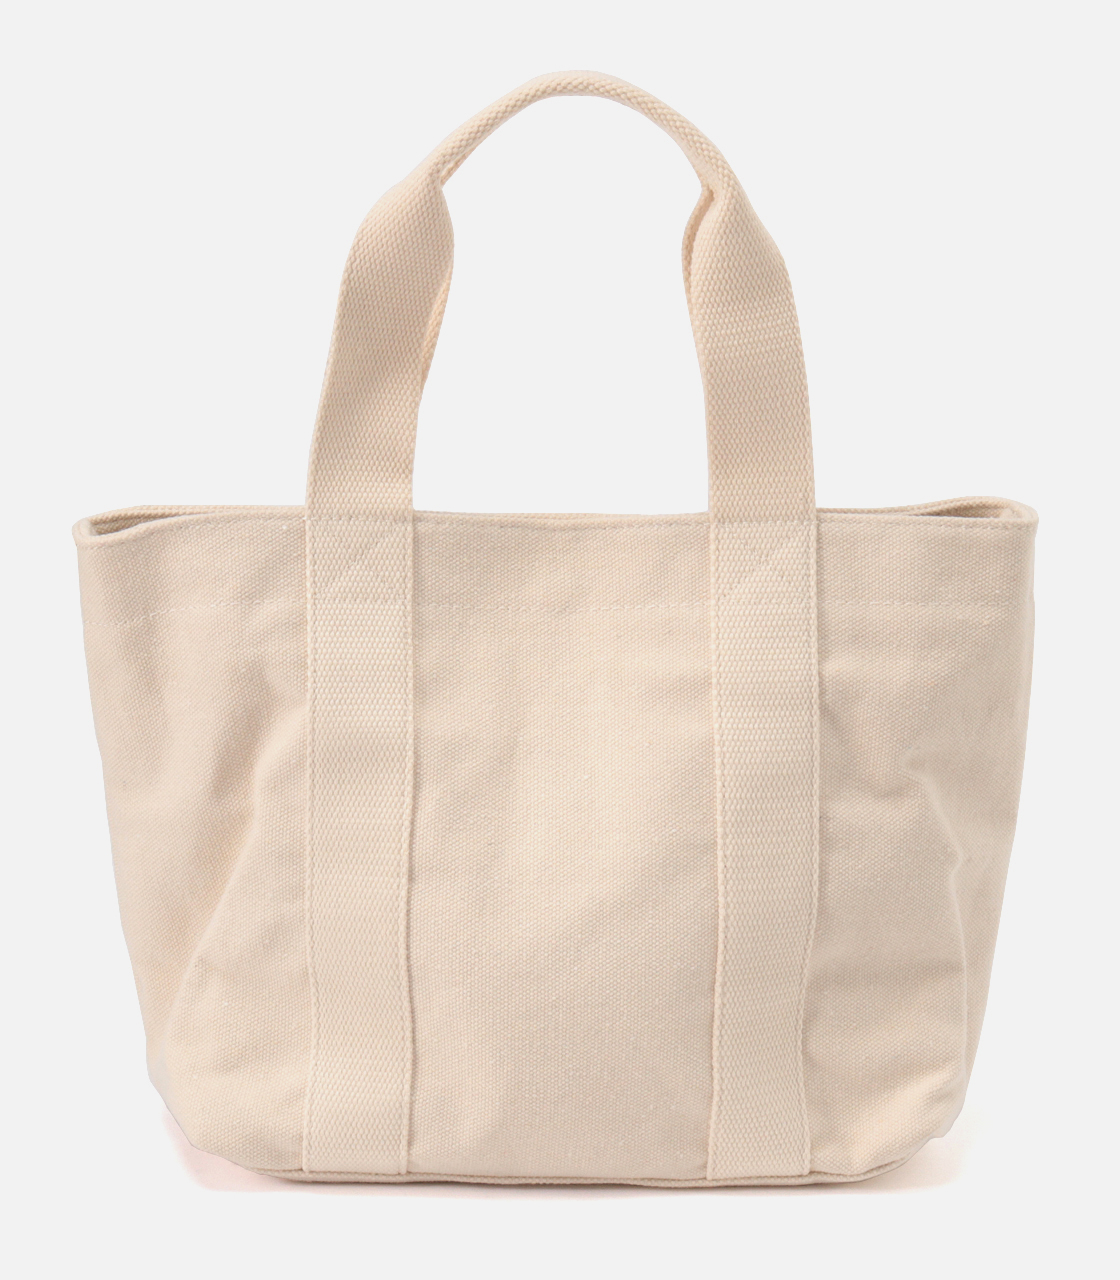 CAMPUS MINI TOTE BAG/キャンバスミニトートバッグ 詳細画像 IVOY 2